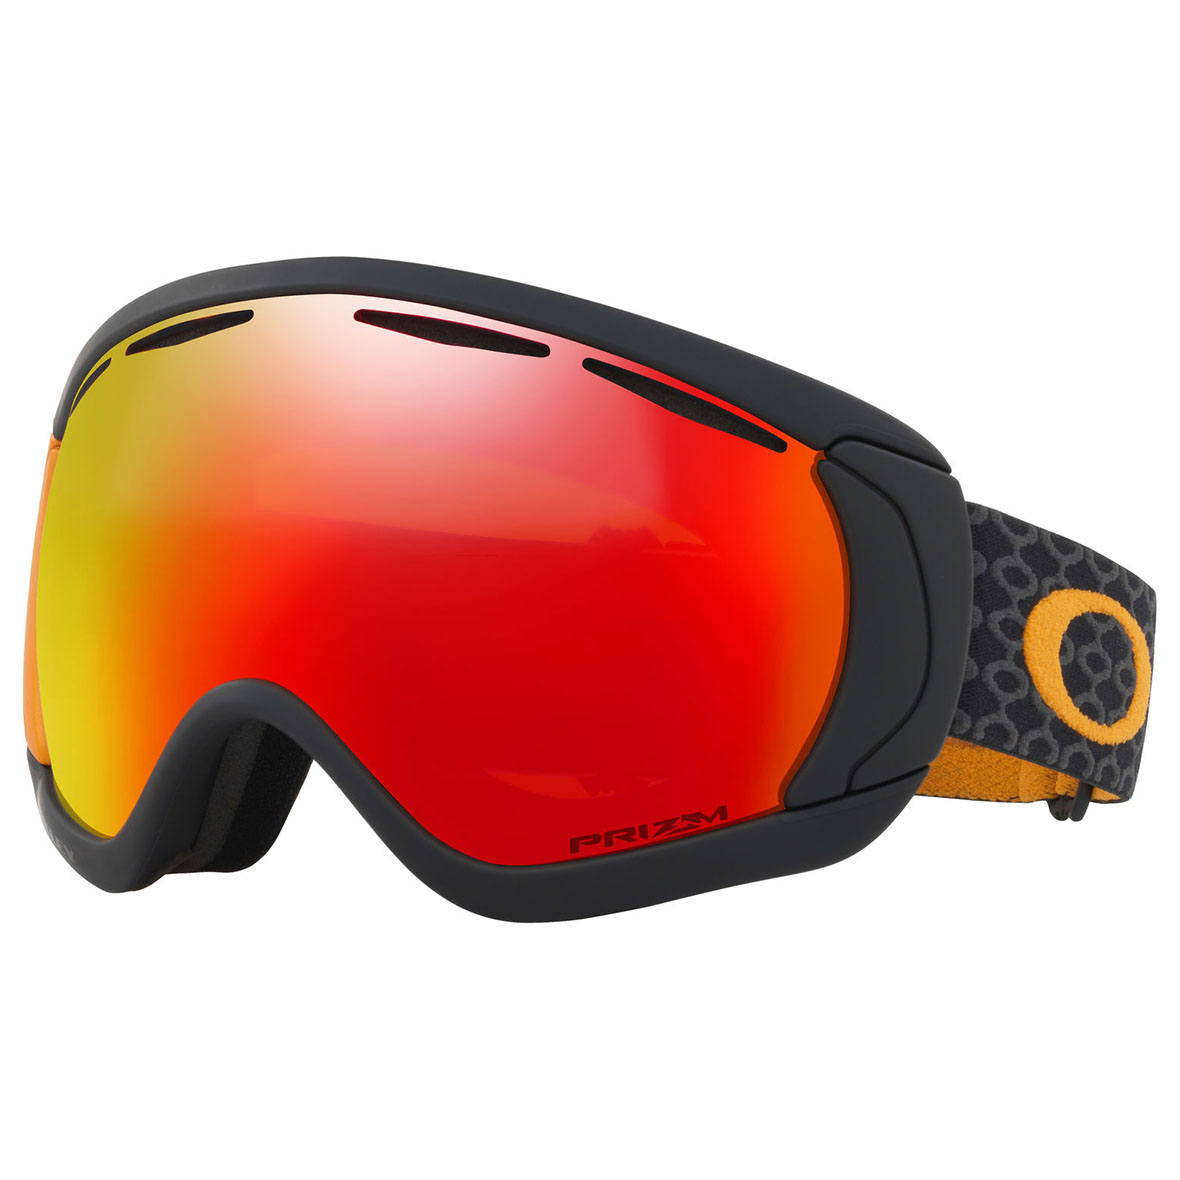 80430a70b51 Canopy™ Aksel Lund Svindal Signature Series Snow Goggle